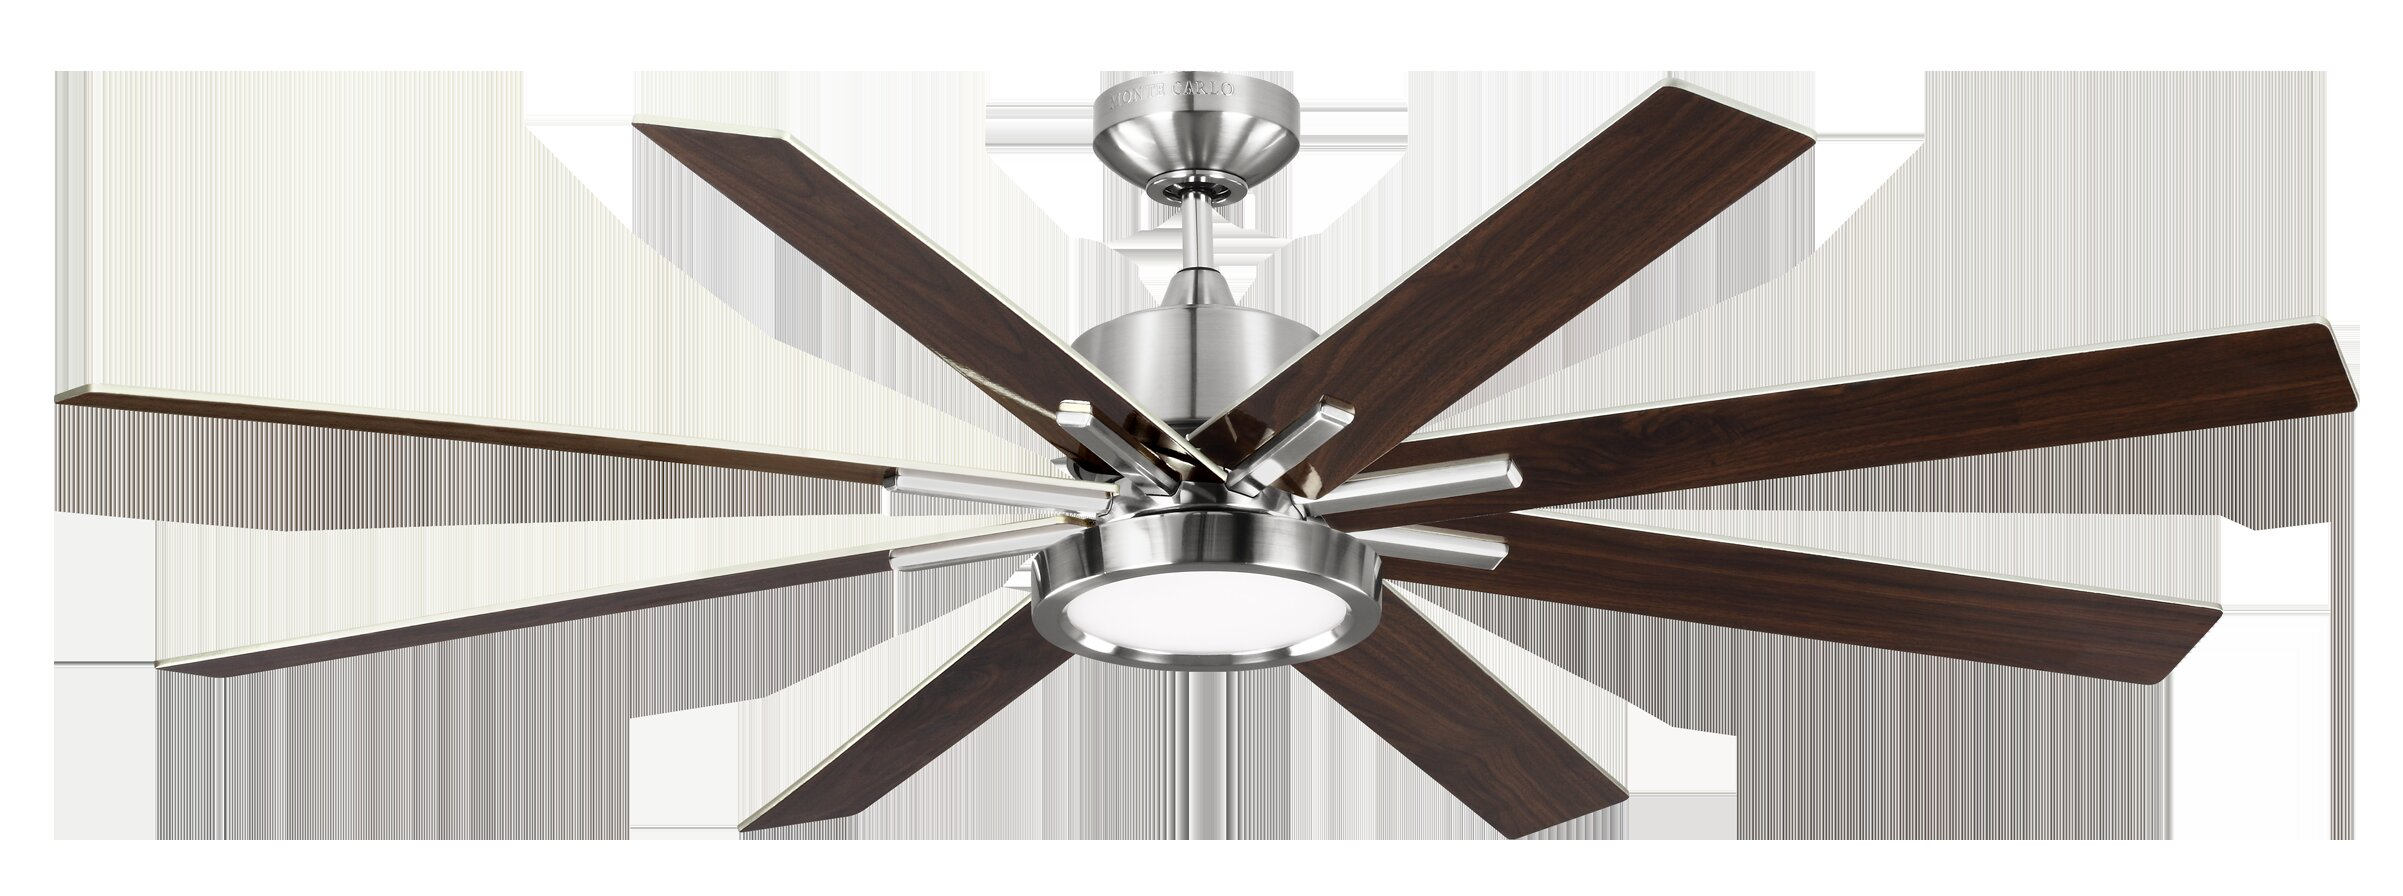 blade bg ceiling fans remote gallery aiea with gauguin diameter minka ceilings fan aire pitch hi outdoor